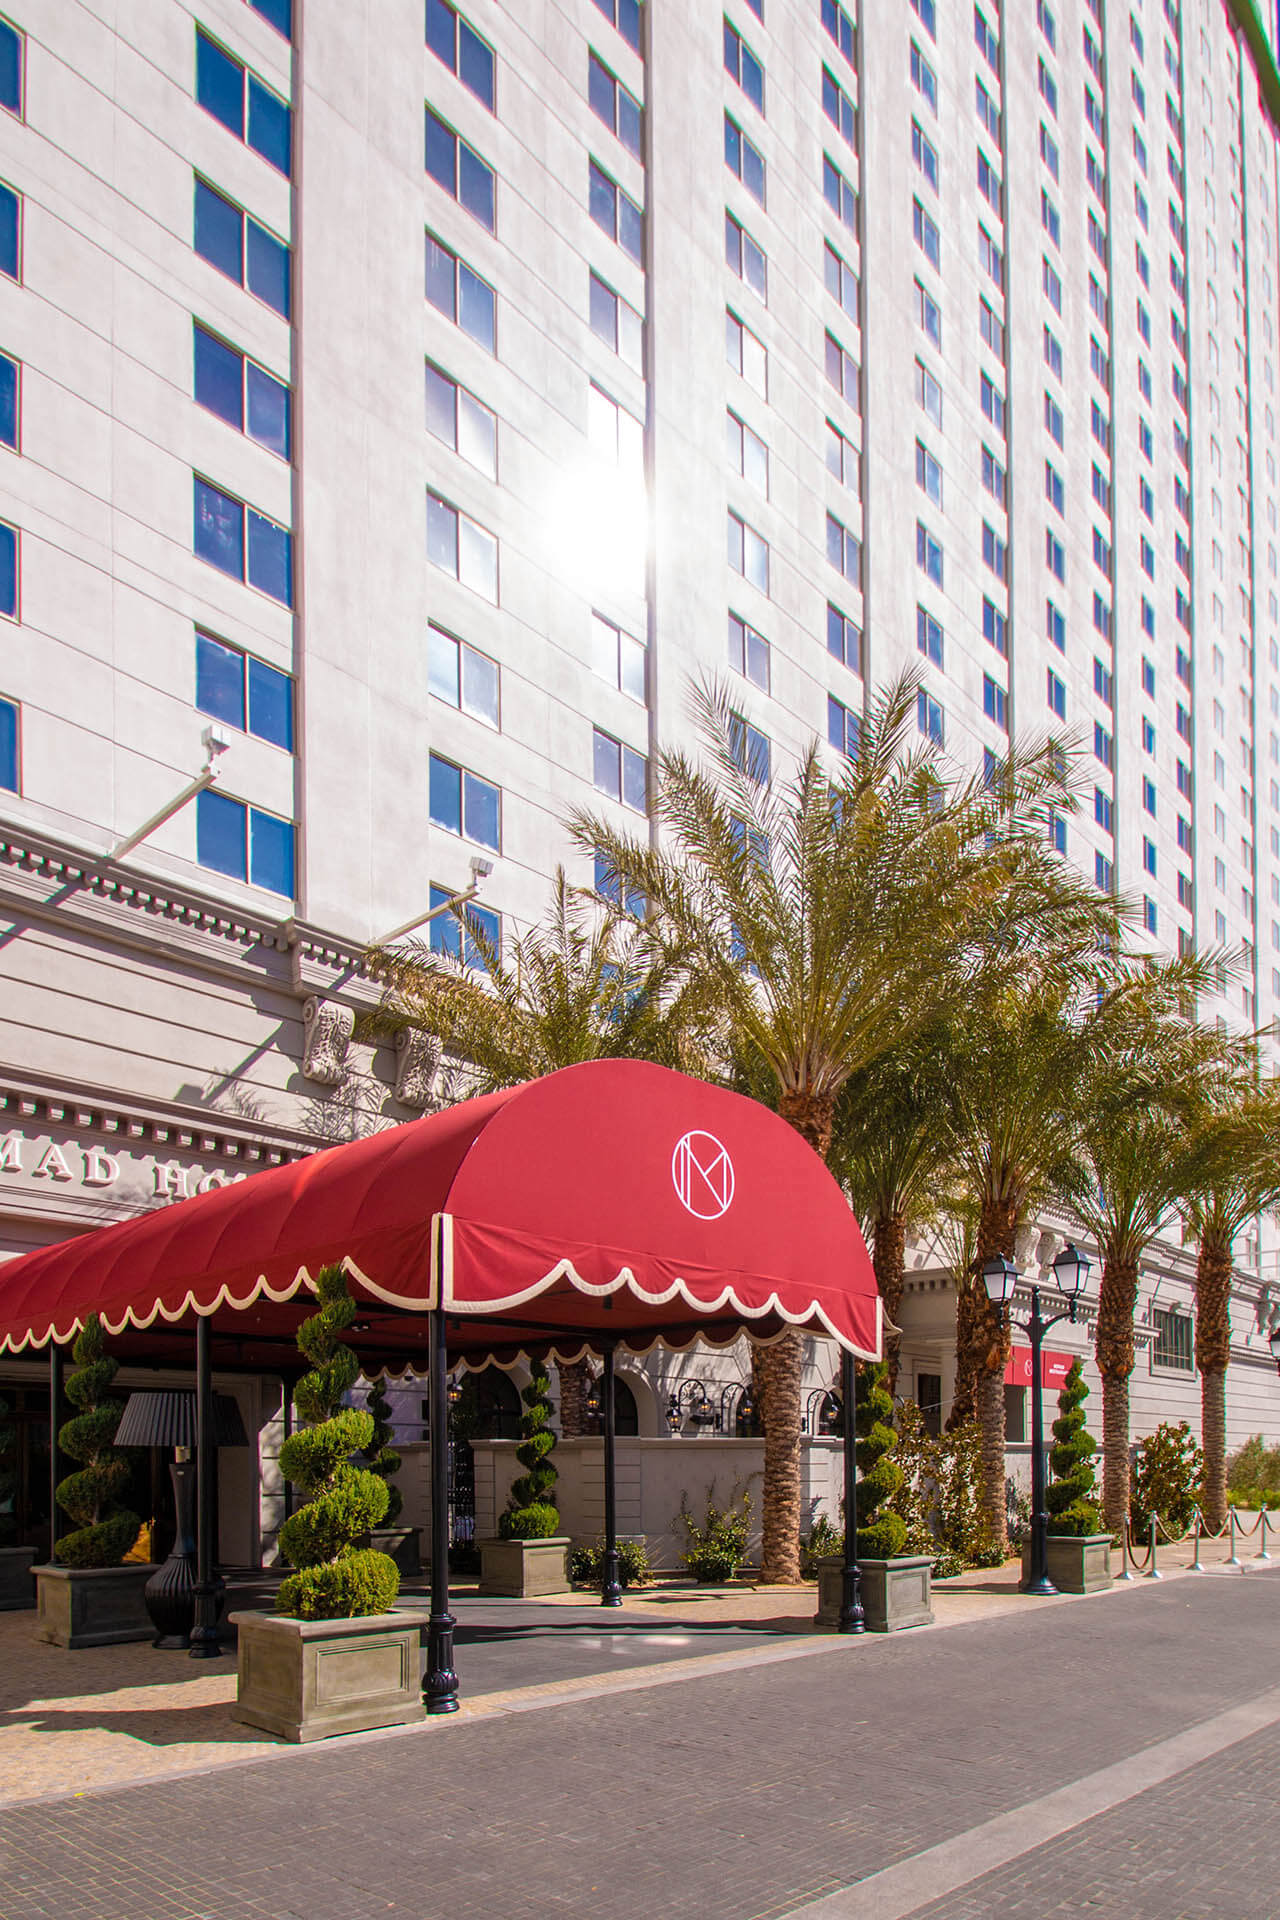 NoMad Hotel of Las Vegas, at Park MGM - Commercial Awning ...